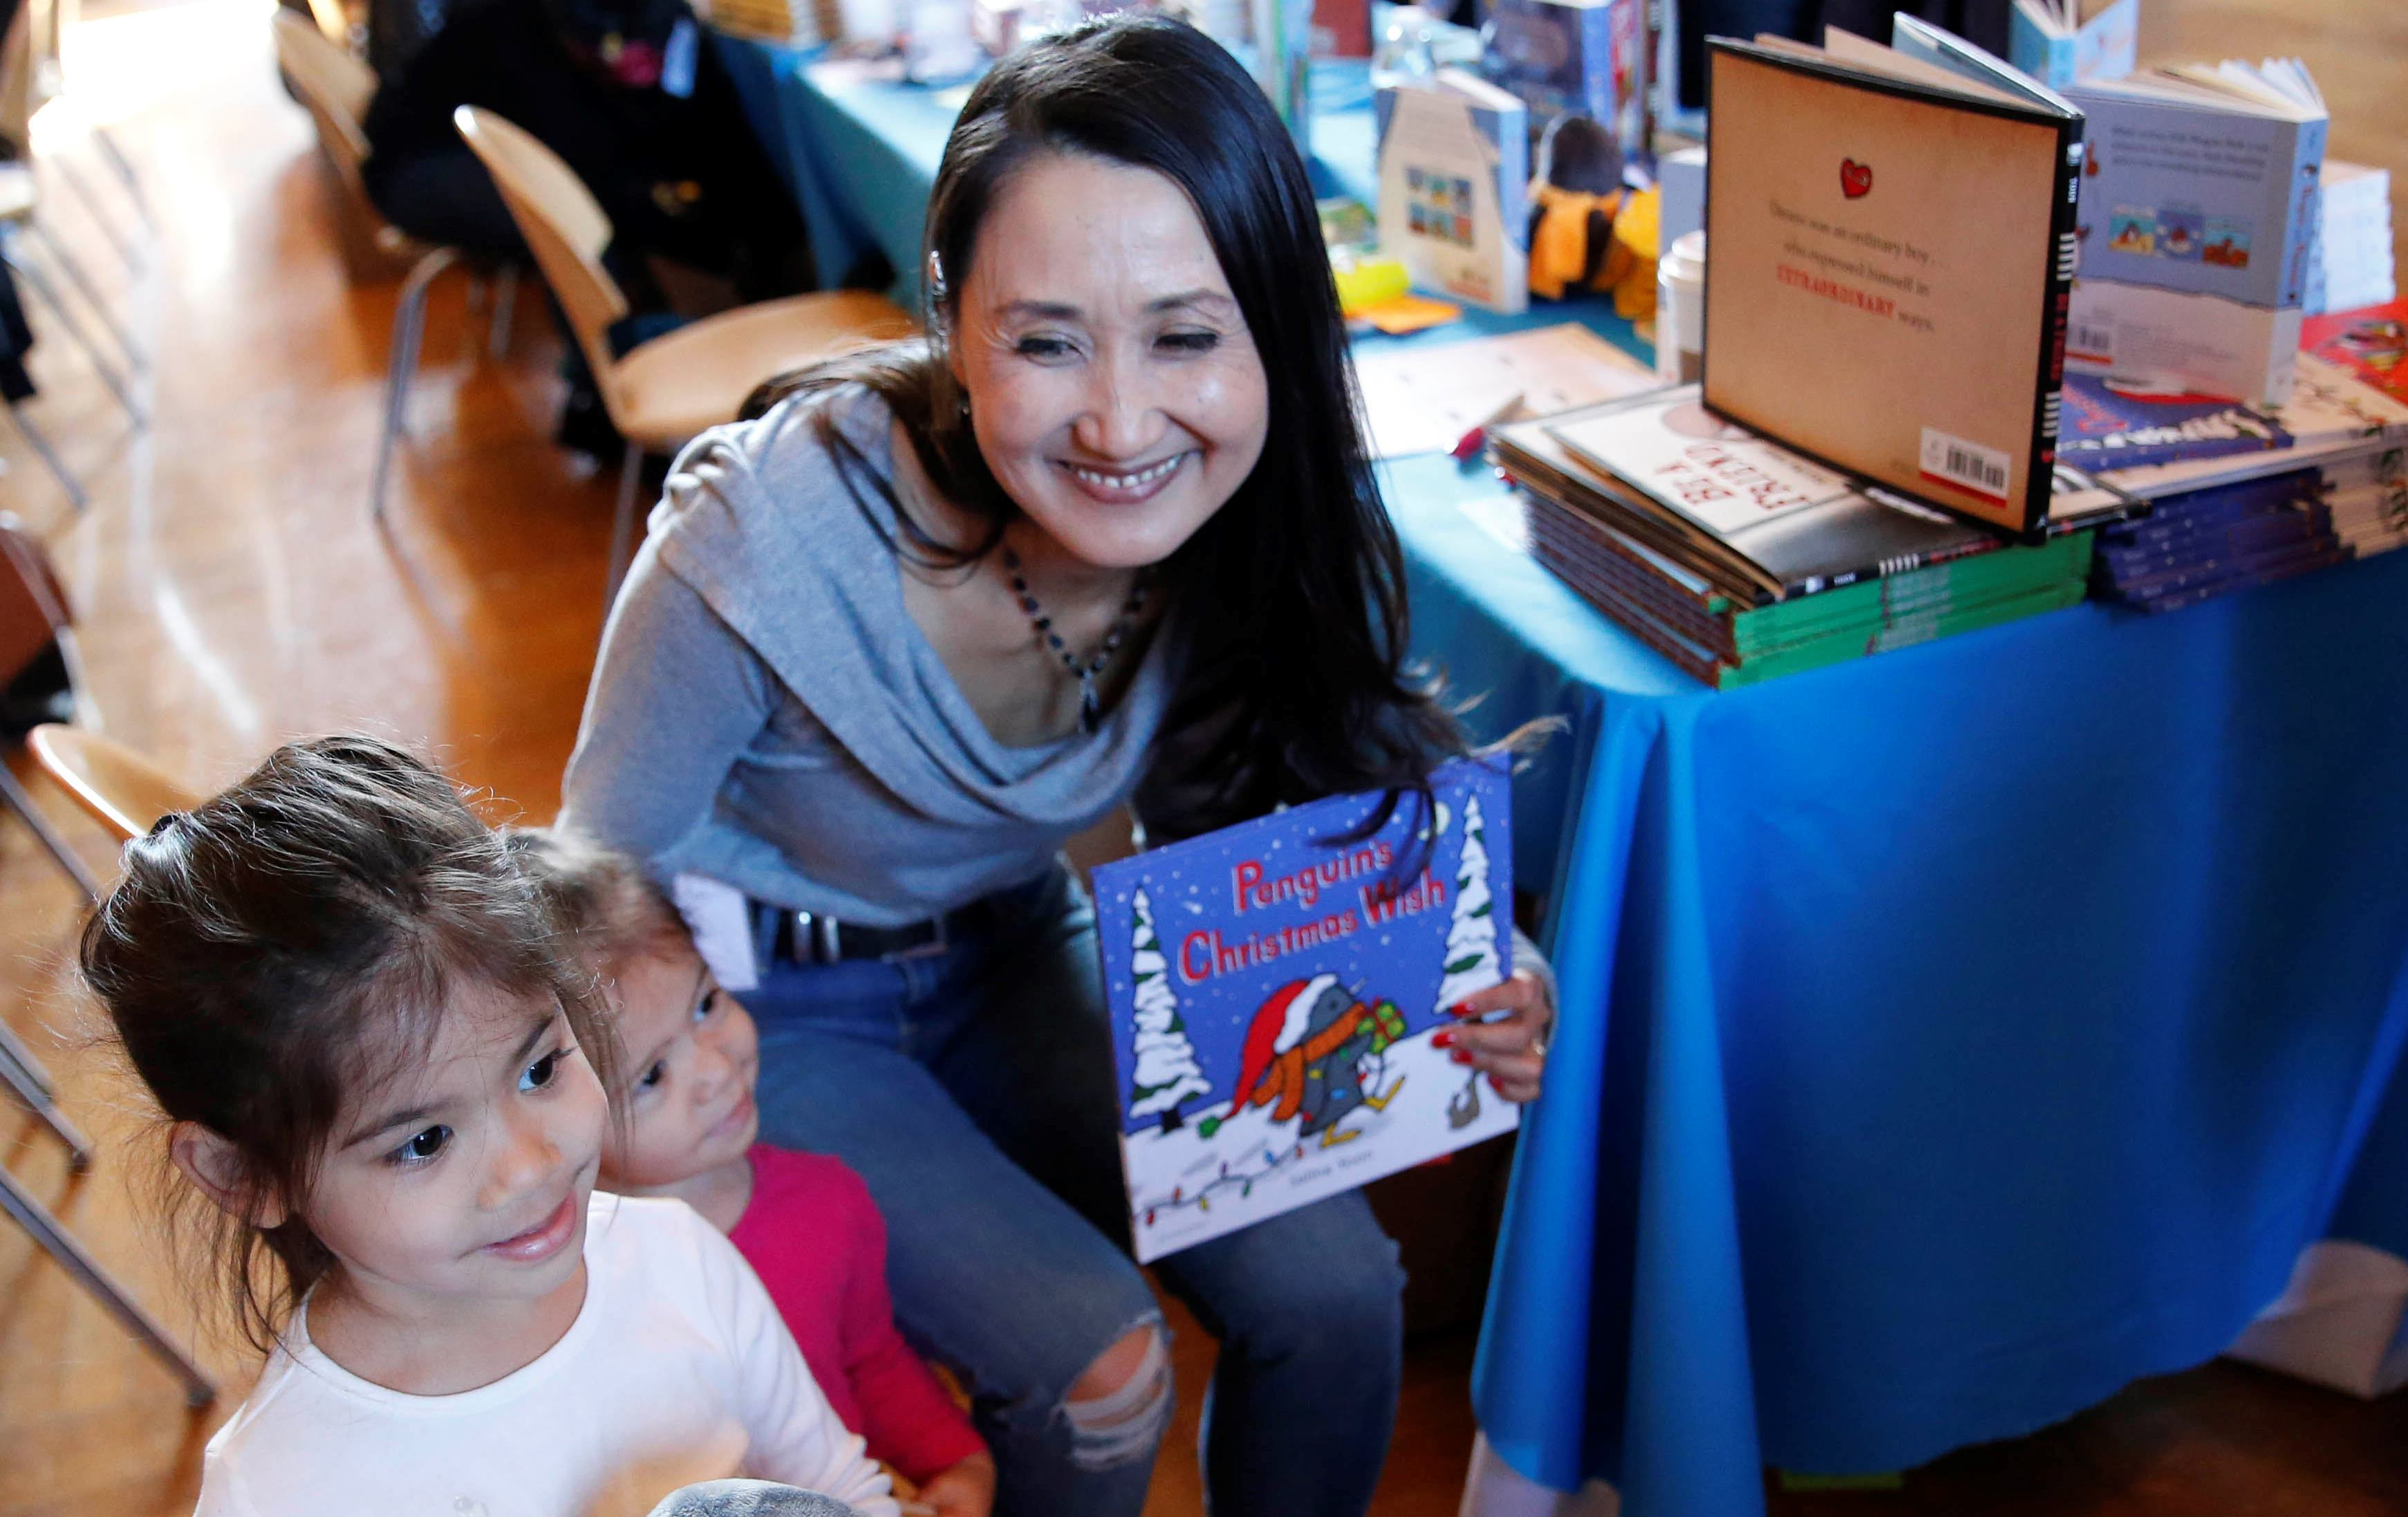 Sisters Rosalie and Hazel Htun, ages 4 and 2, pose for a photo with author Salina Yoon of San Diego and the penguin character from her book at the WNY Children's Book Expo at Kleinhans on Sunday, Nov. 6, 2016. (Derek Gee/Buffalo News)